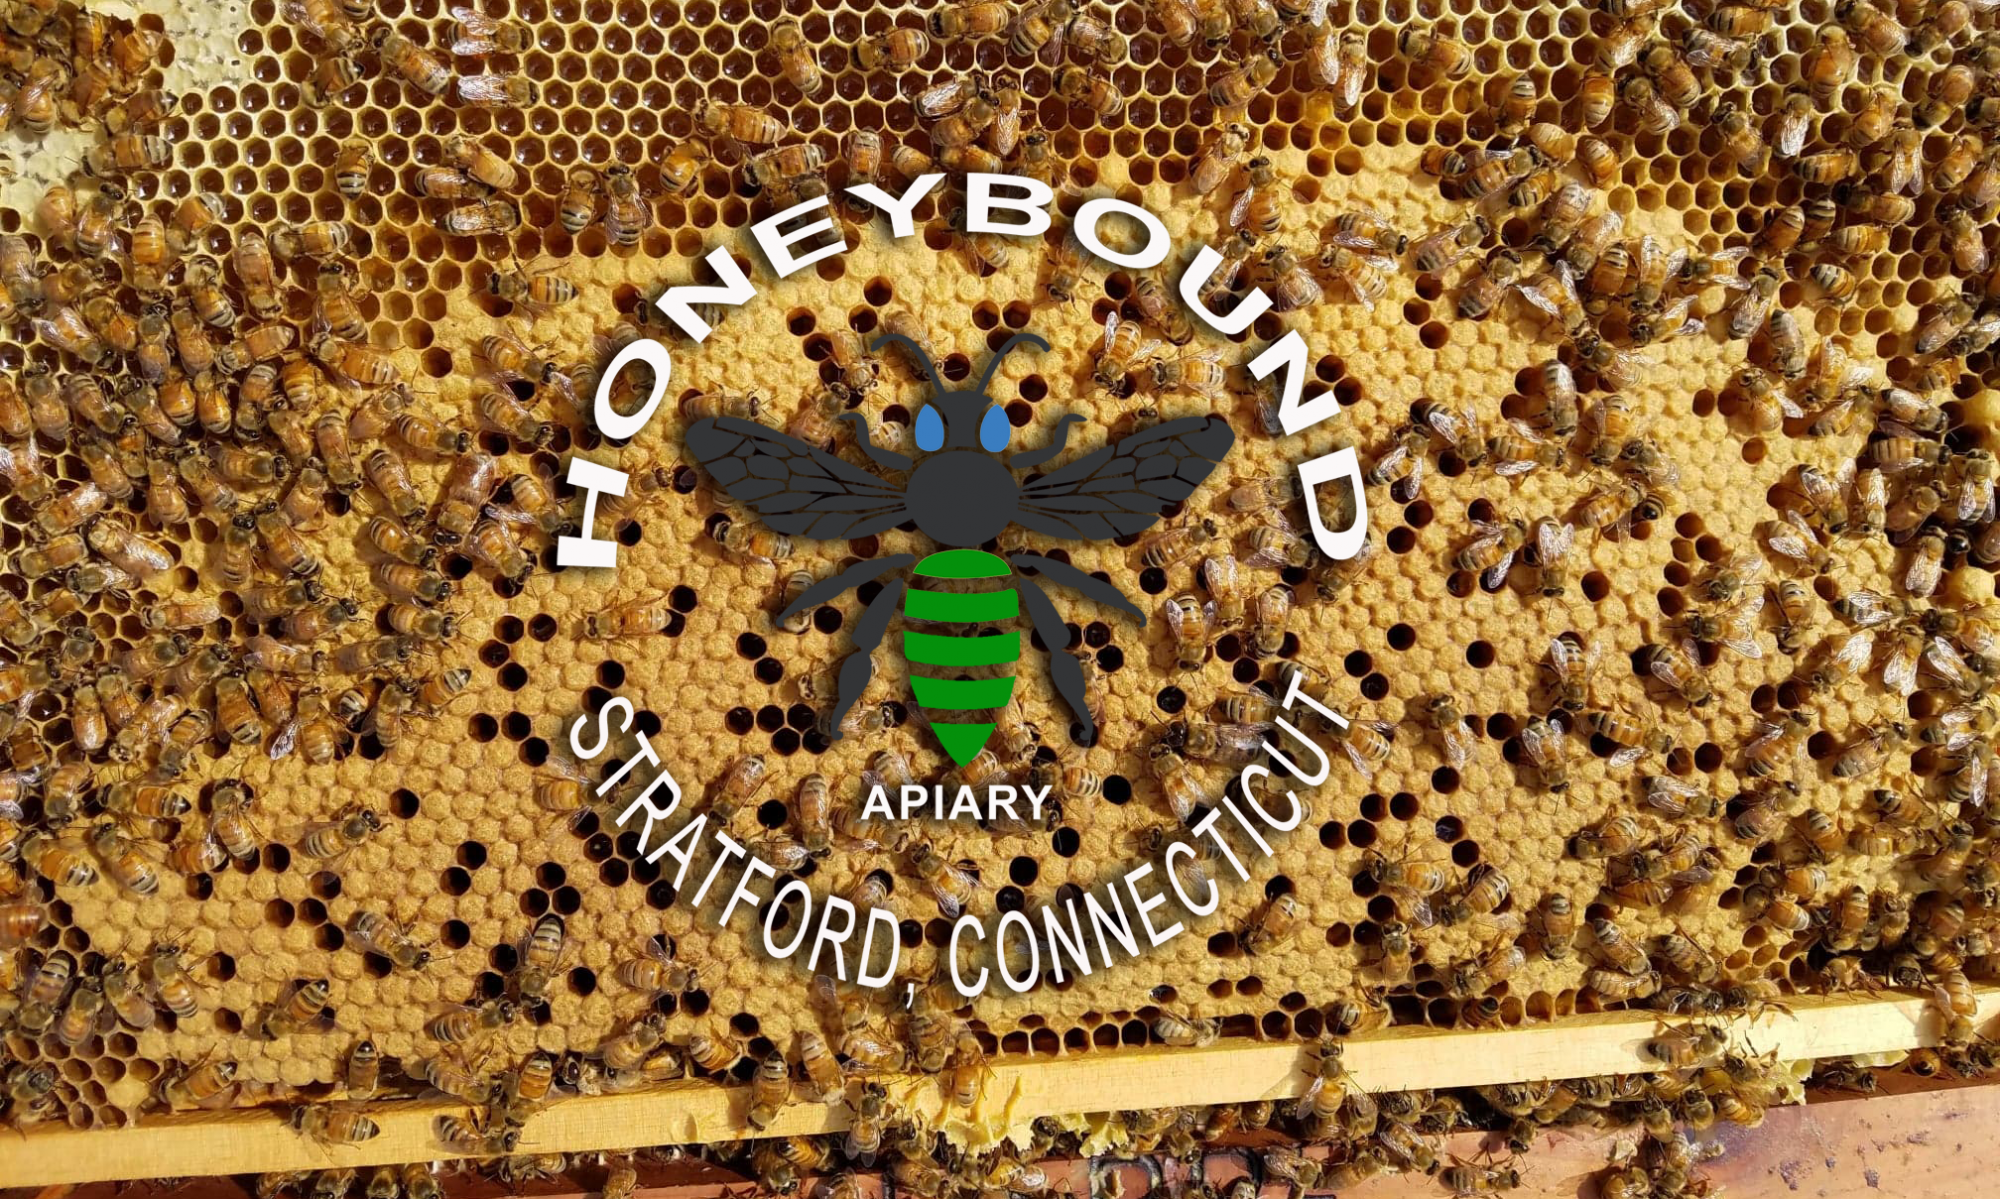 Honeybound Apiary